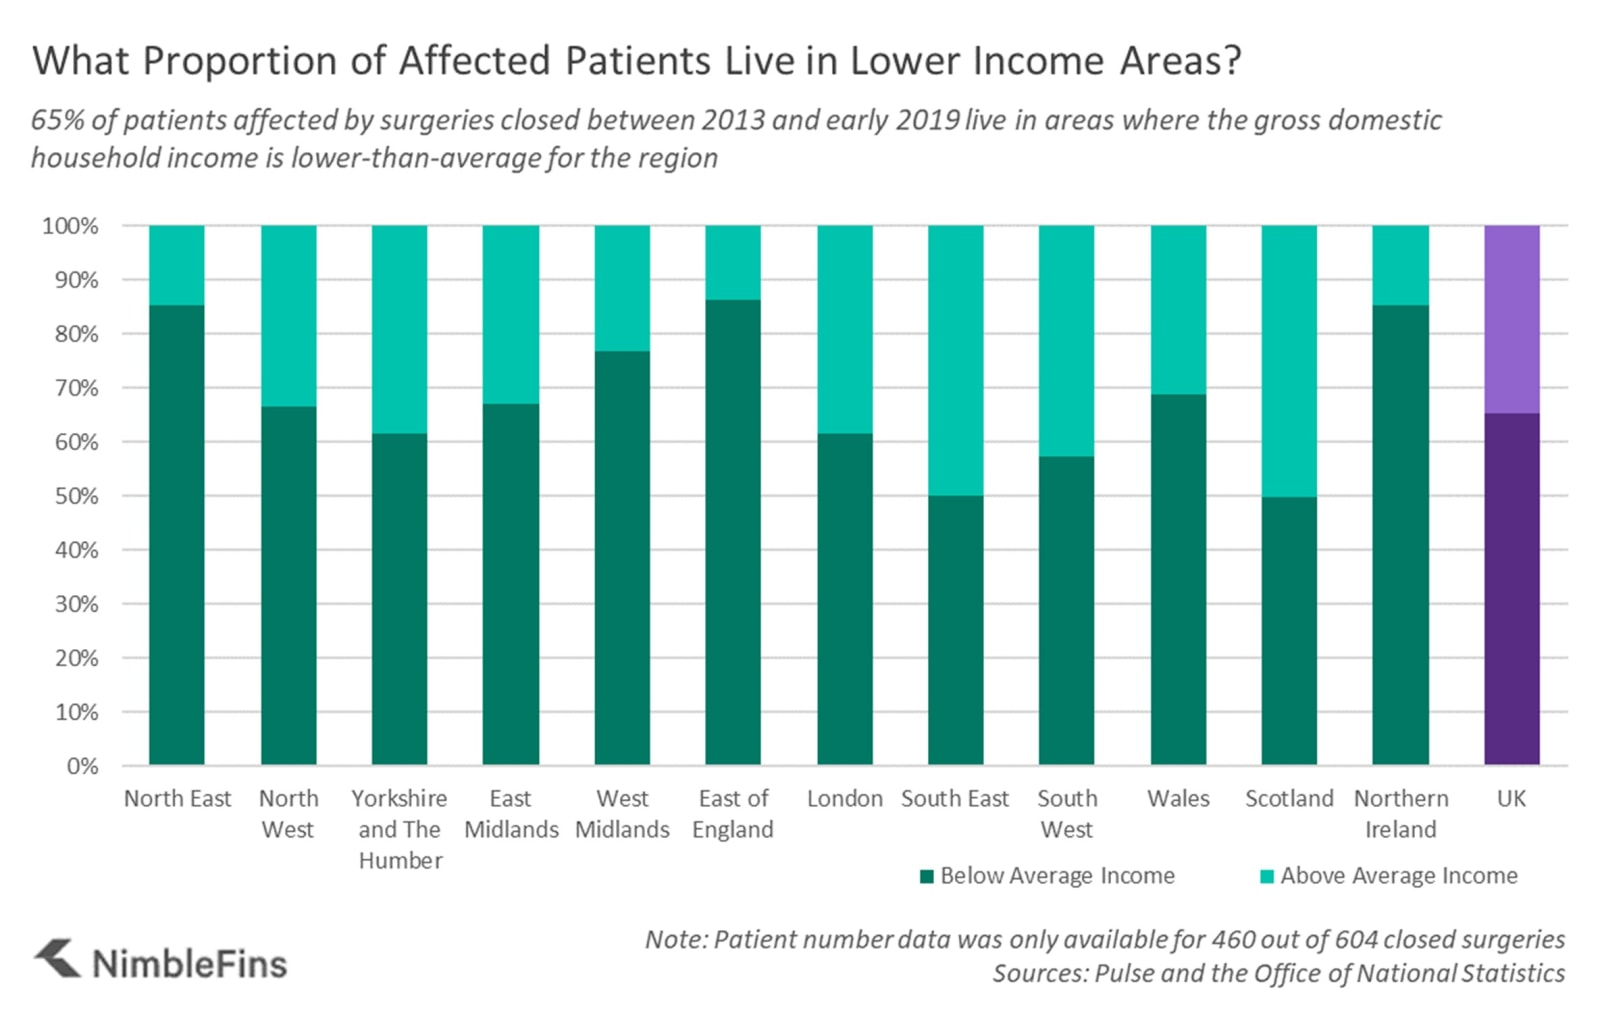 Chart showing the proportion of patients affected by NHS surgery closures who live in lower income areas